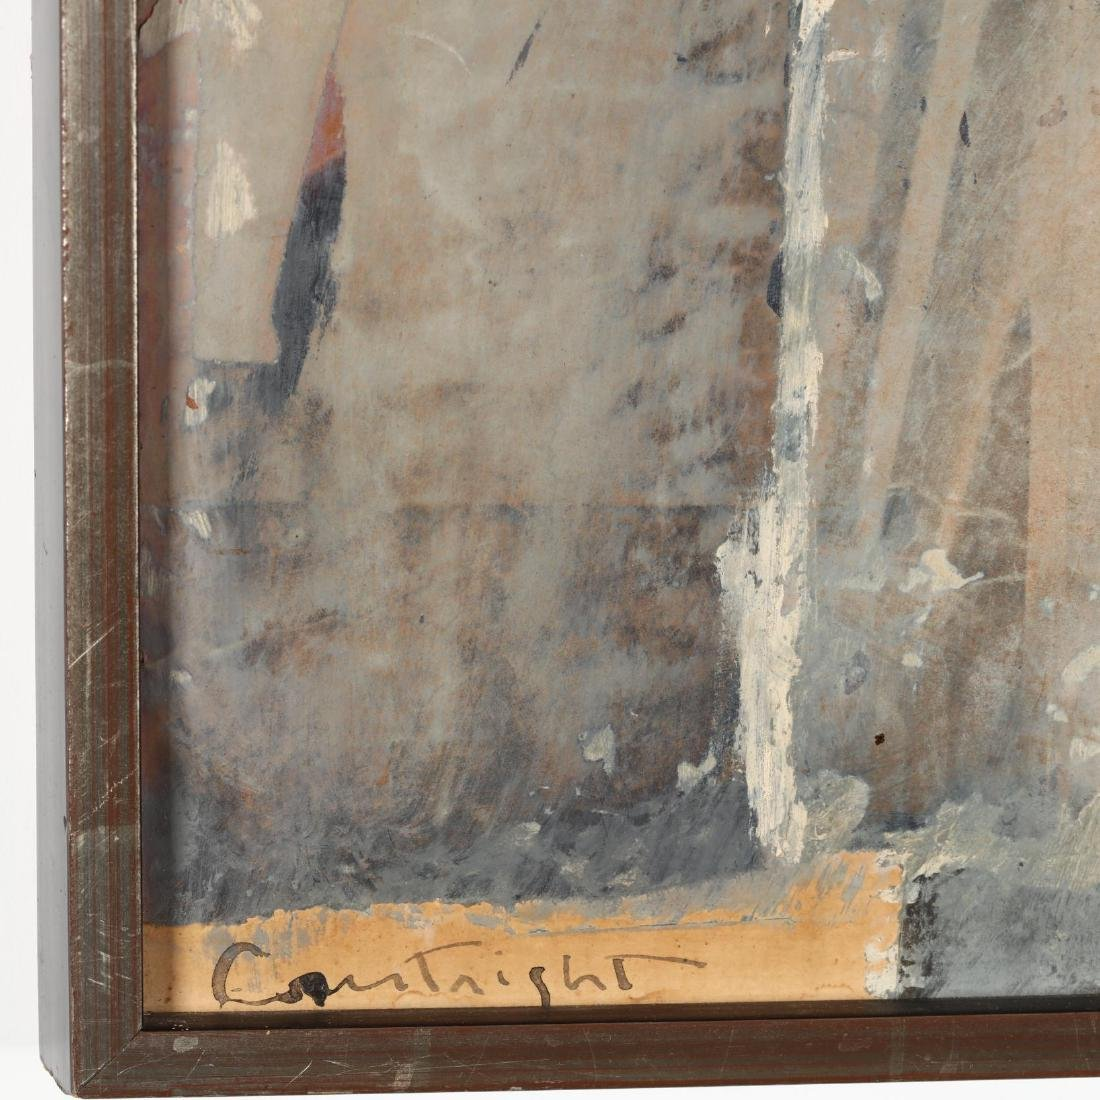 Robert Courtright (SC, 1926-2012), Untitled - 2